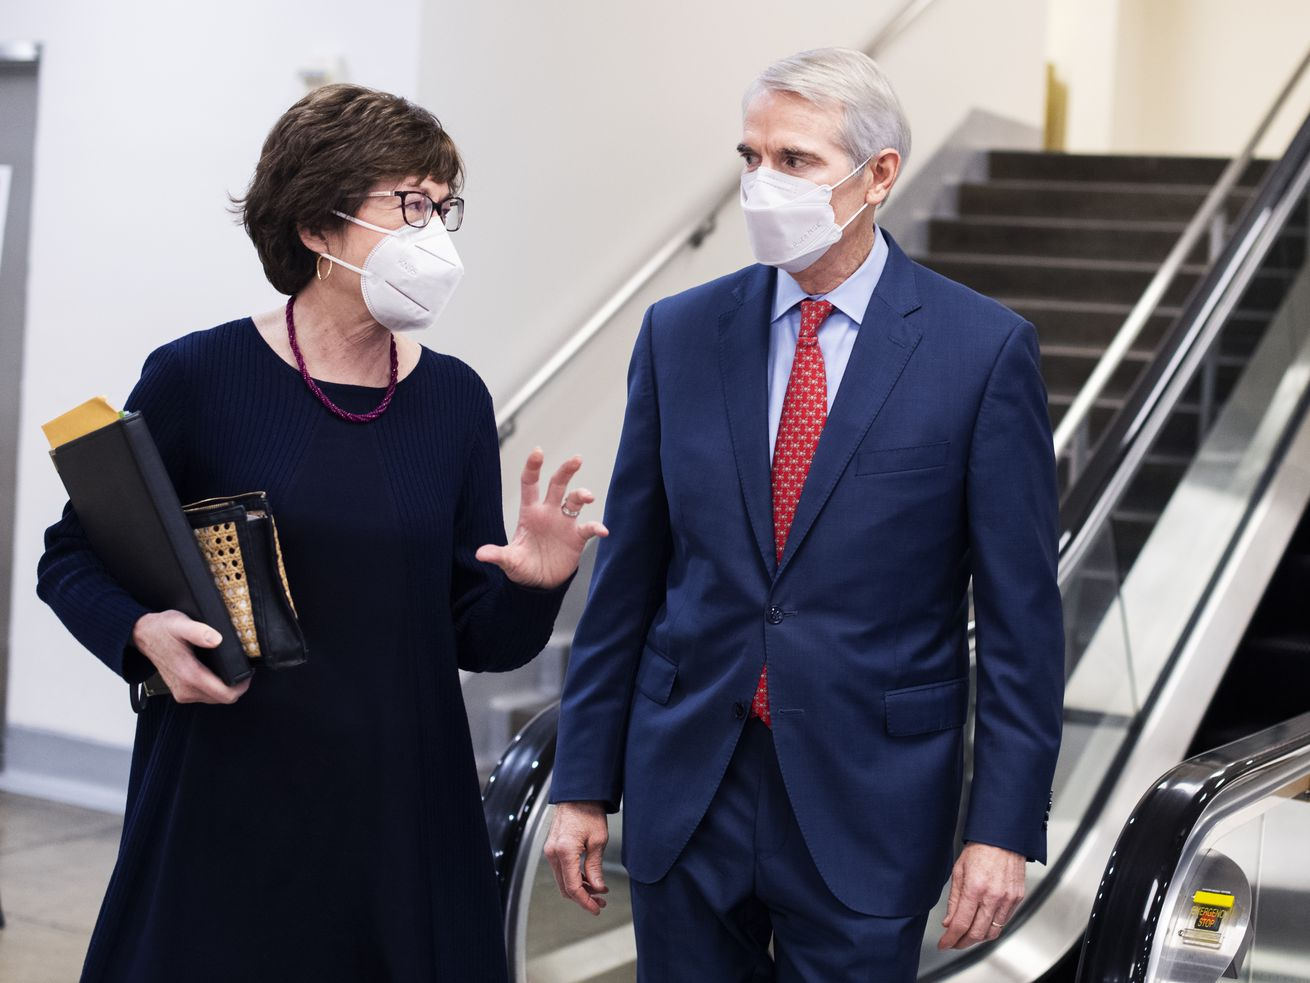 Collins, in a dark dress, gestures with her left hand while speaking to Portman, in a navy suit and red tie — they stand in front of an escalator near the Capitol subway, and both are wearing white KN95 masks.